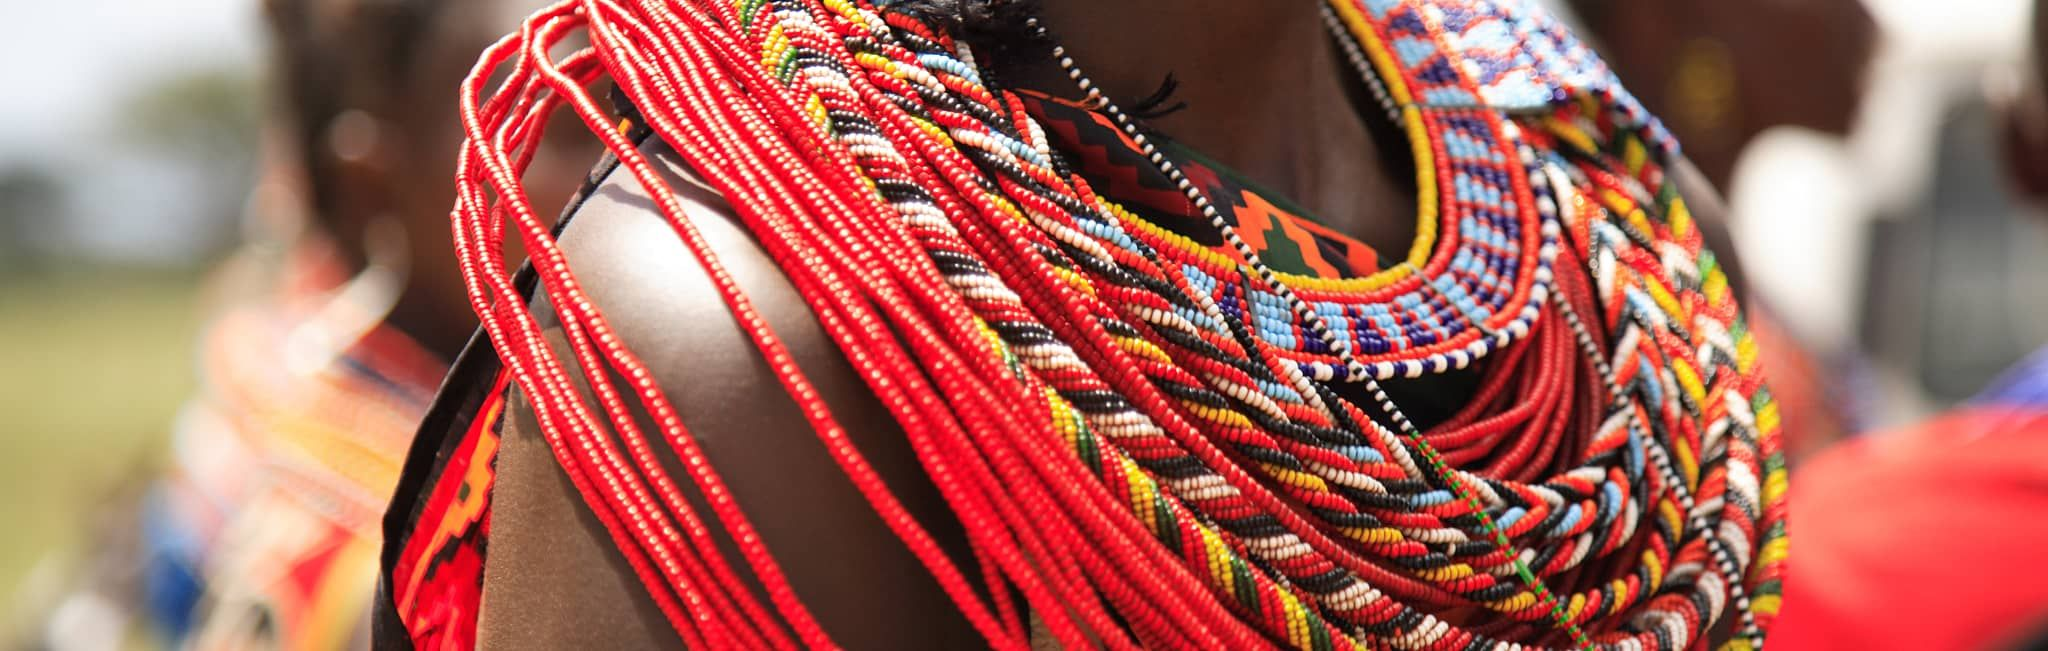 Close up of African jewelry in a Masai Village in Kenya.